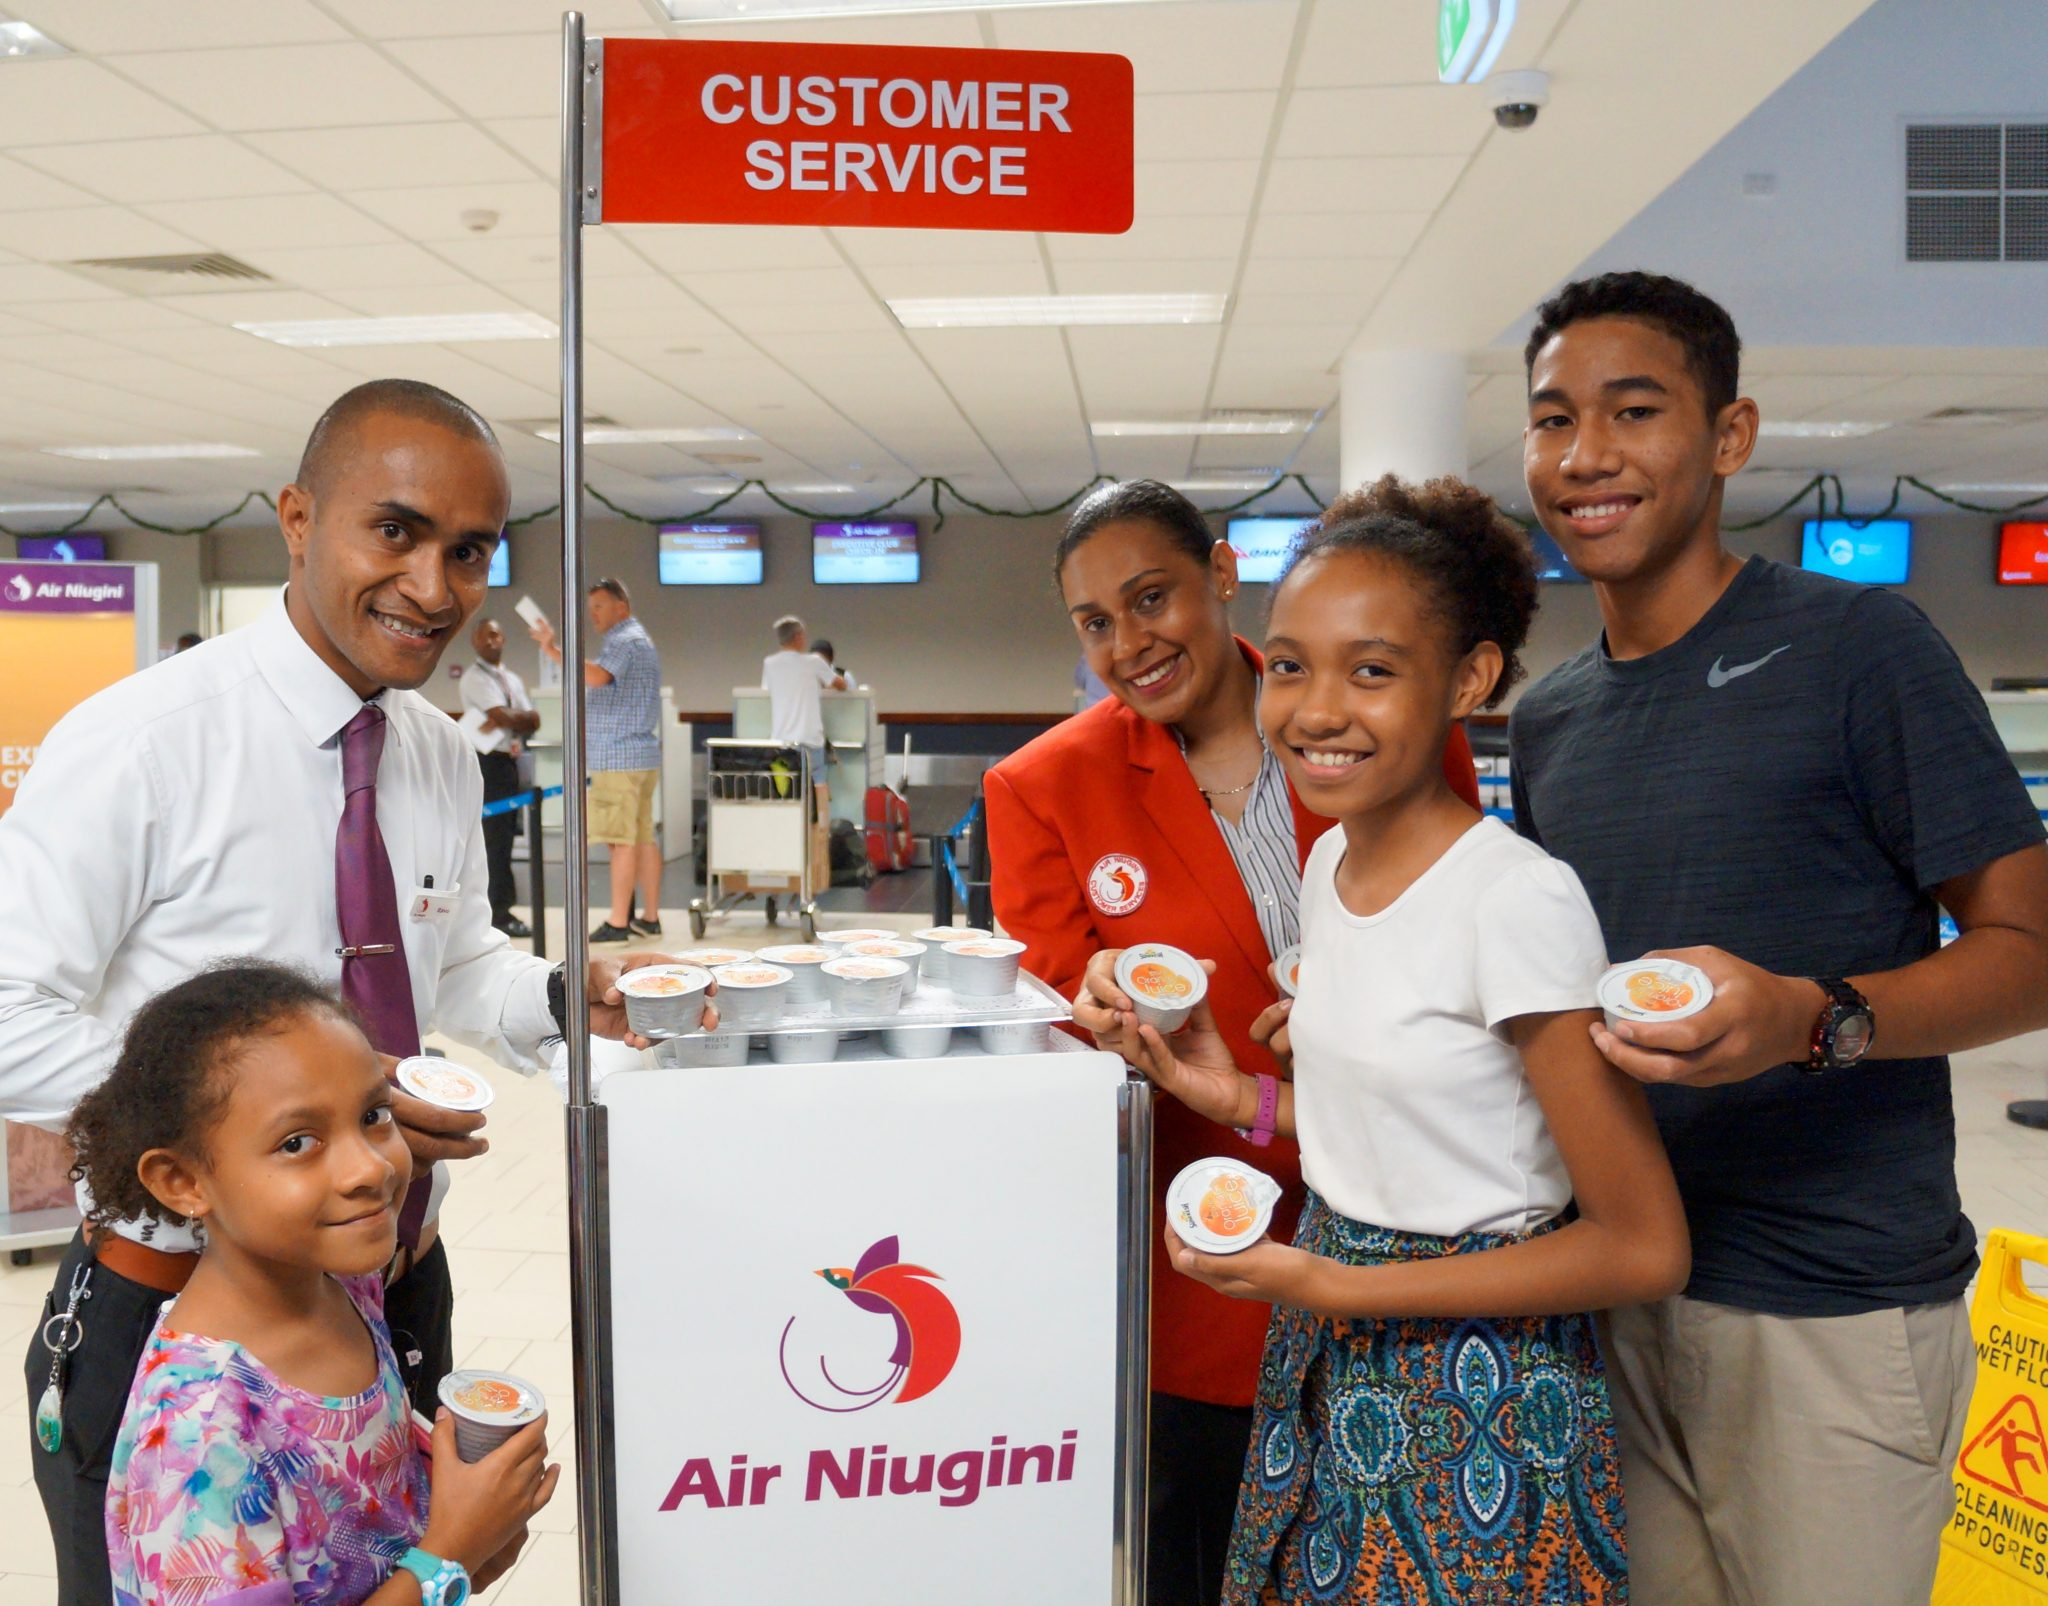 Air Niugini offers free water and juice in the festive period